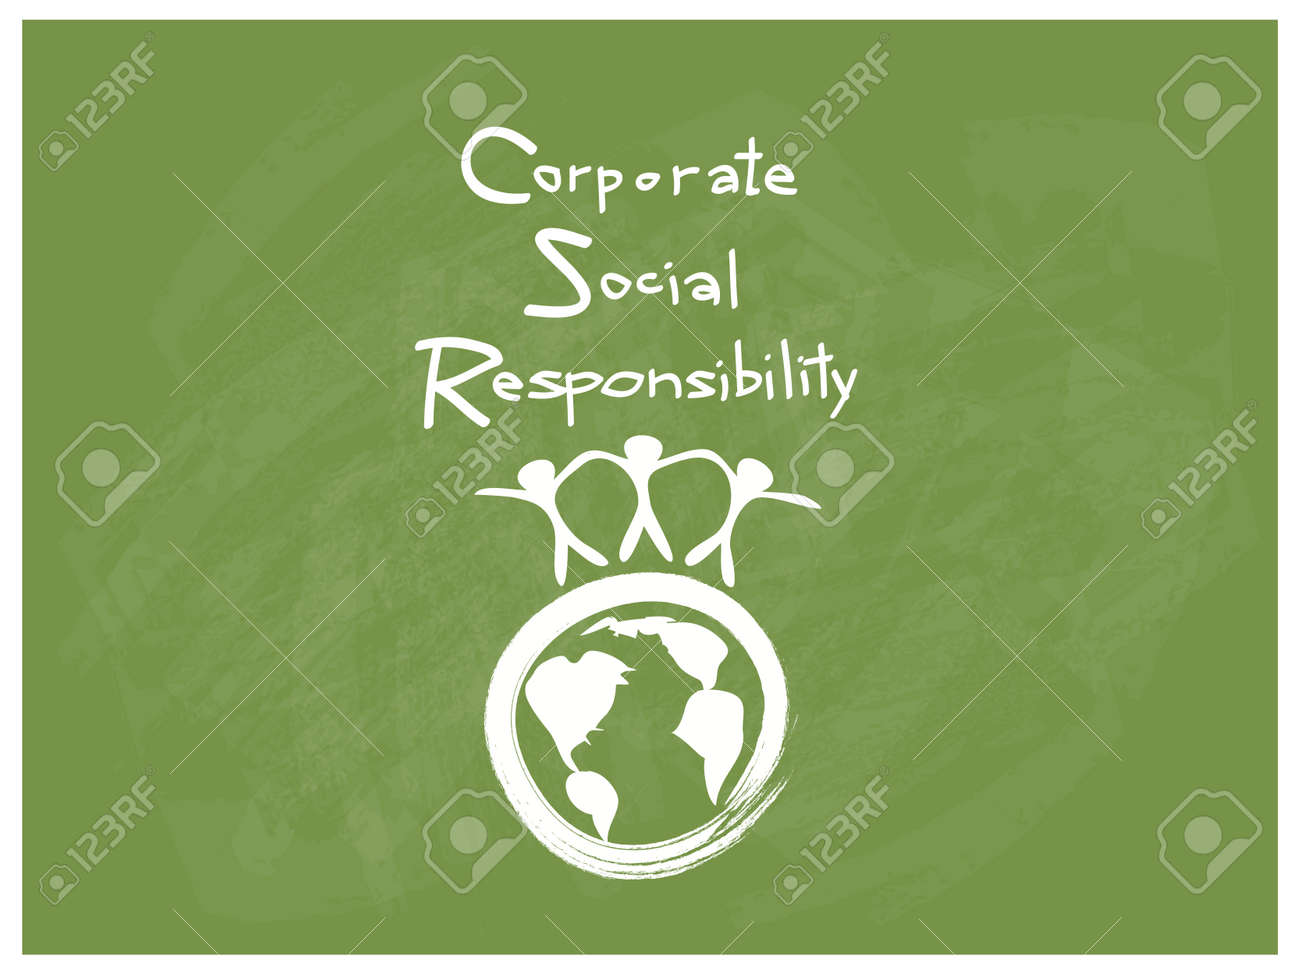 Business Concepts, World Environment with CSR Abbreviation or Corporate Social Responsibility Achieve Notes. - 68631146